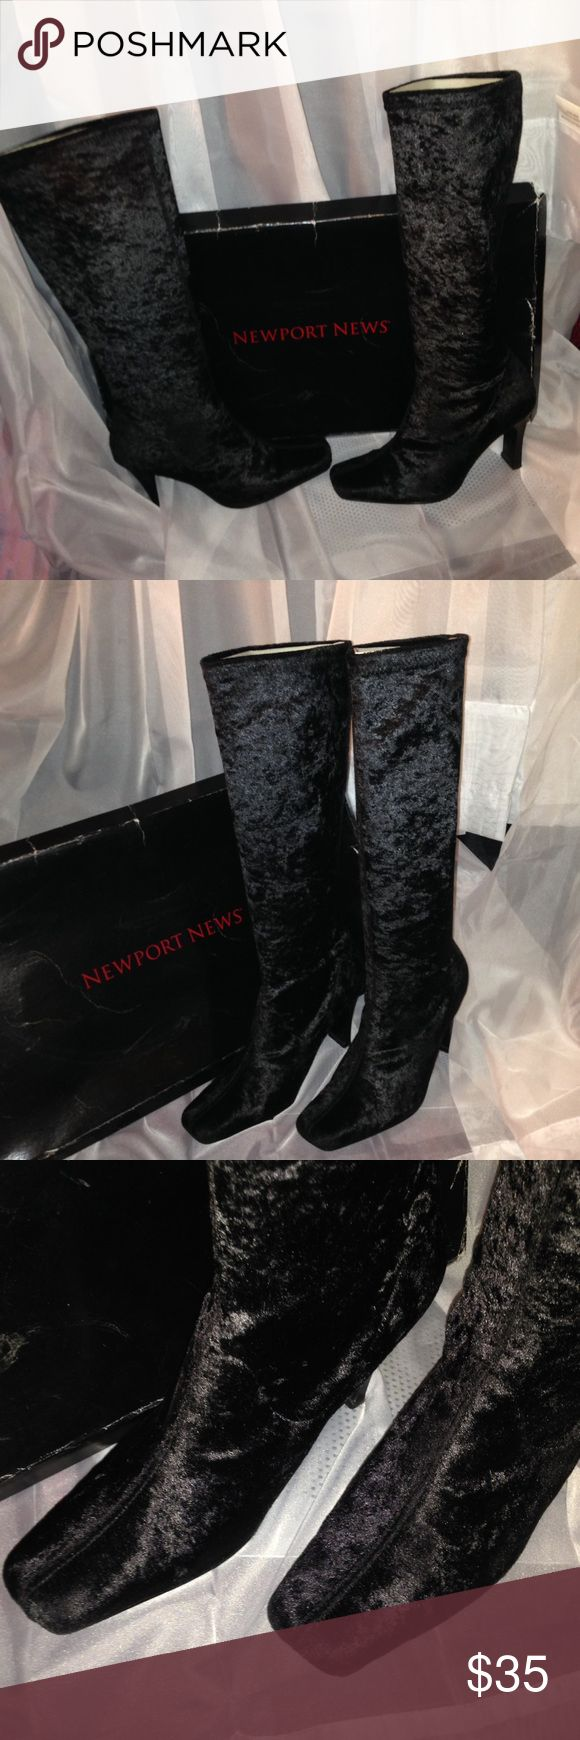 """Newport News Black suede boots size 7m Worn once Newport News Black Suede boots knee highness, size 7m measurements Height from heel to top 18"""" heel 4"""" calf circumference 14"""" Newport News Shoes Heeled Boots"""